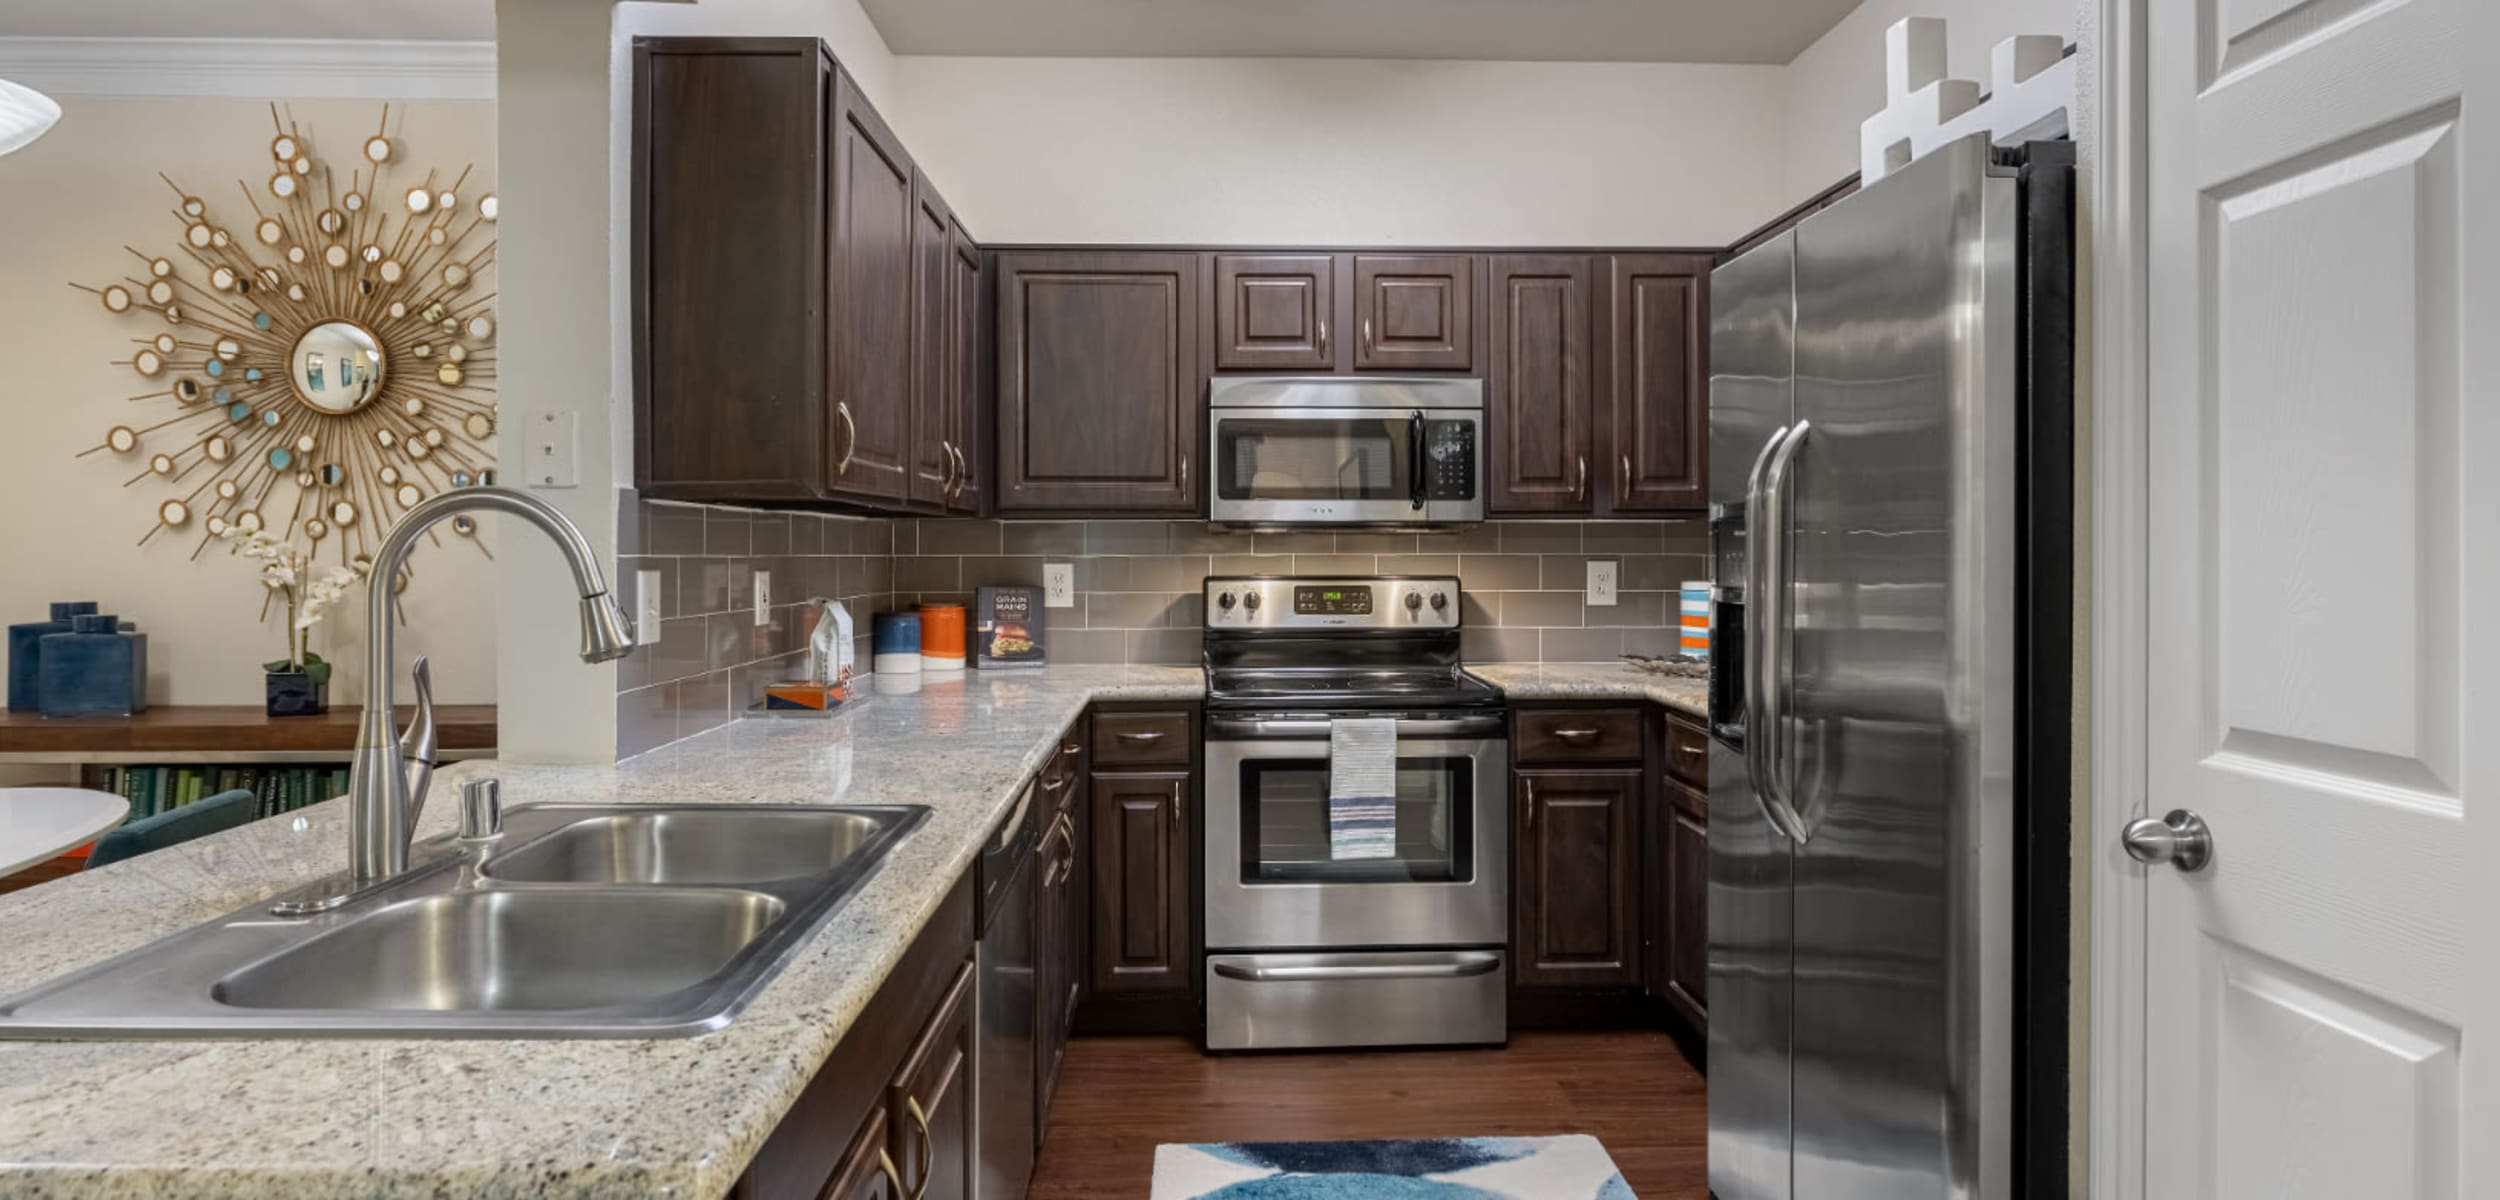 Modern kitchen with granite counters, stainless steel appliances, and wood flooring at Marquis at Kingwood in Kingwood, Texas